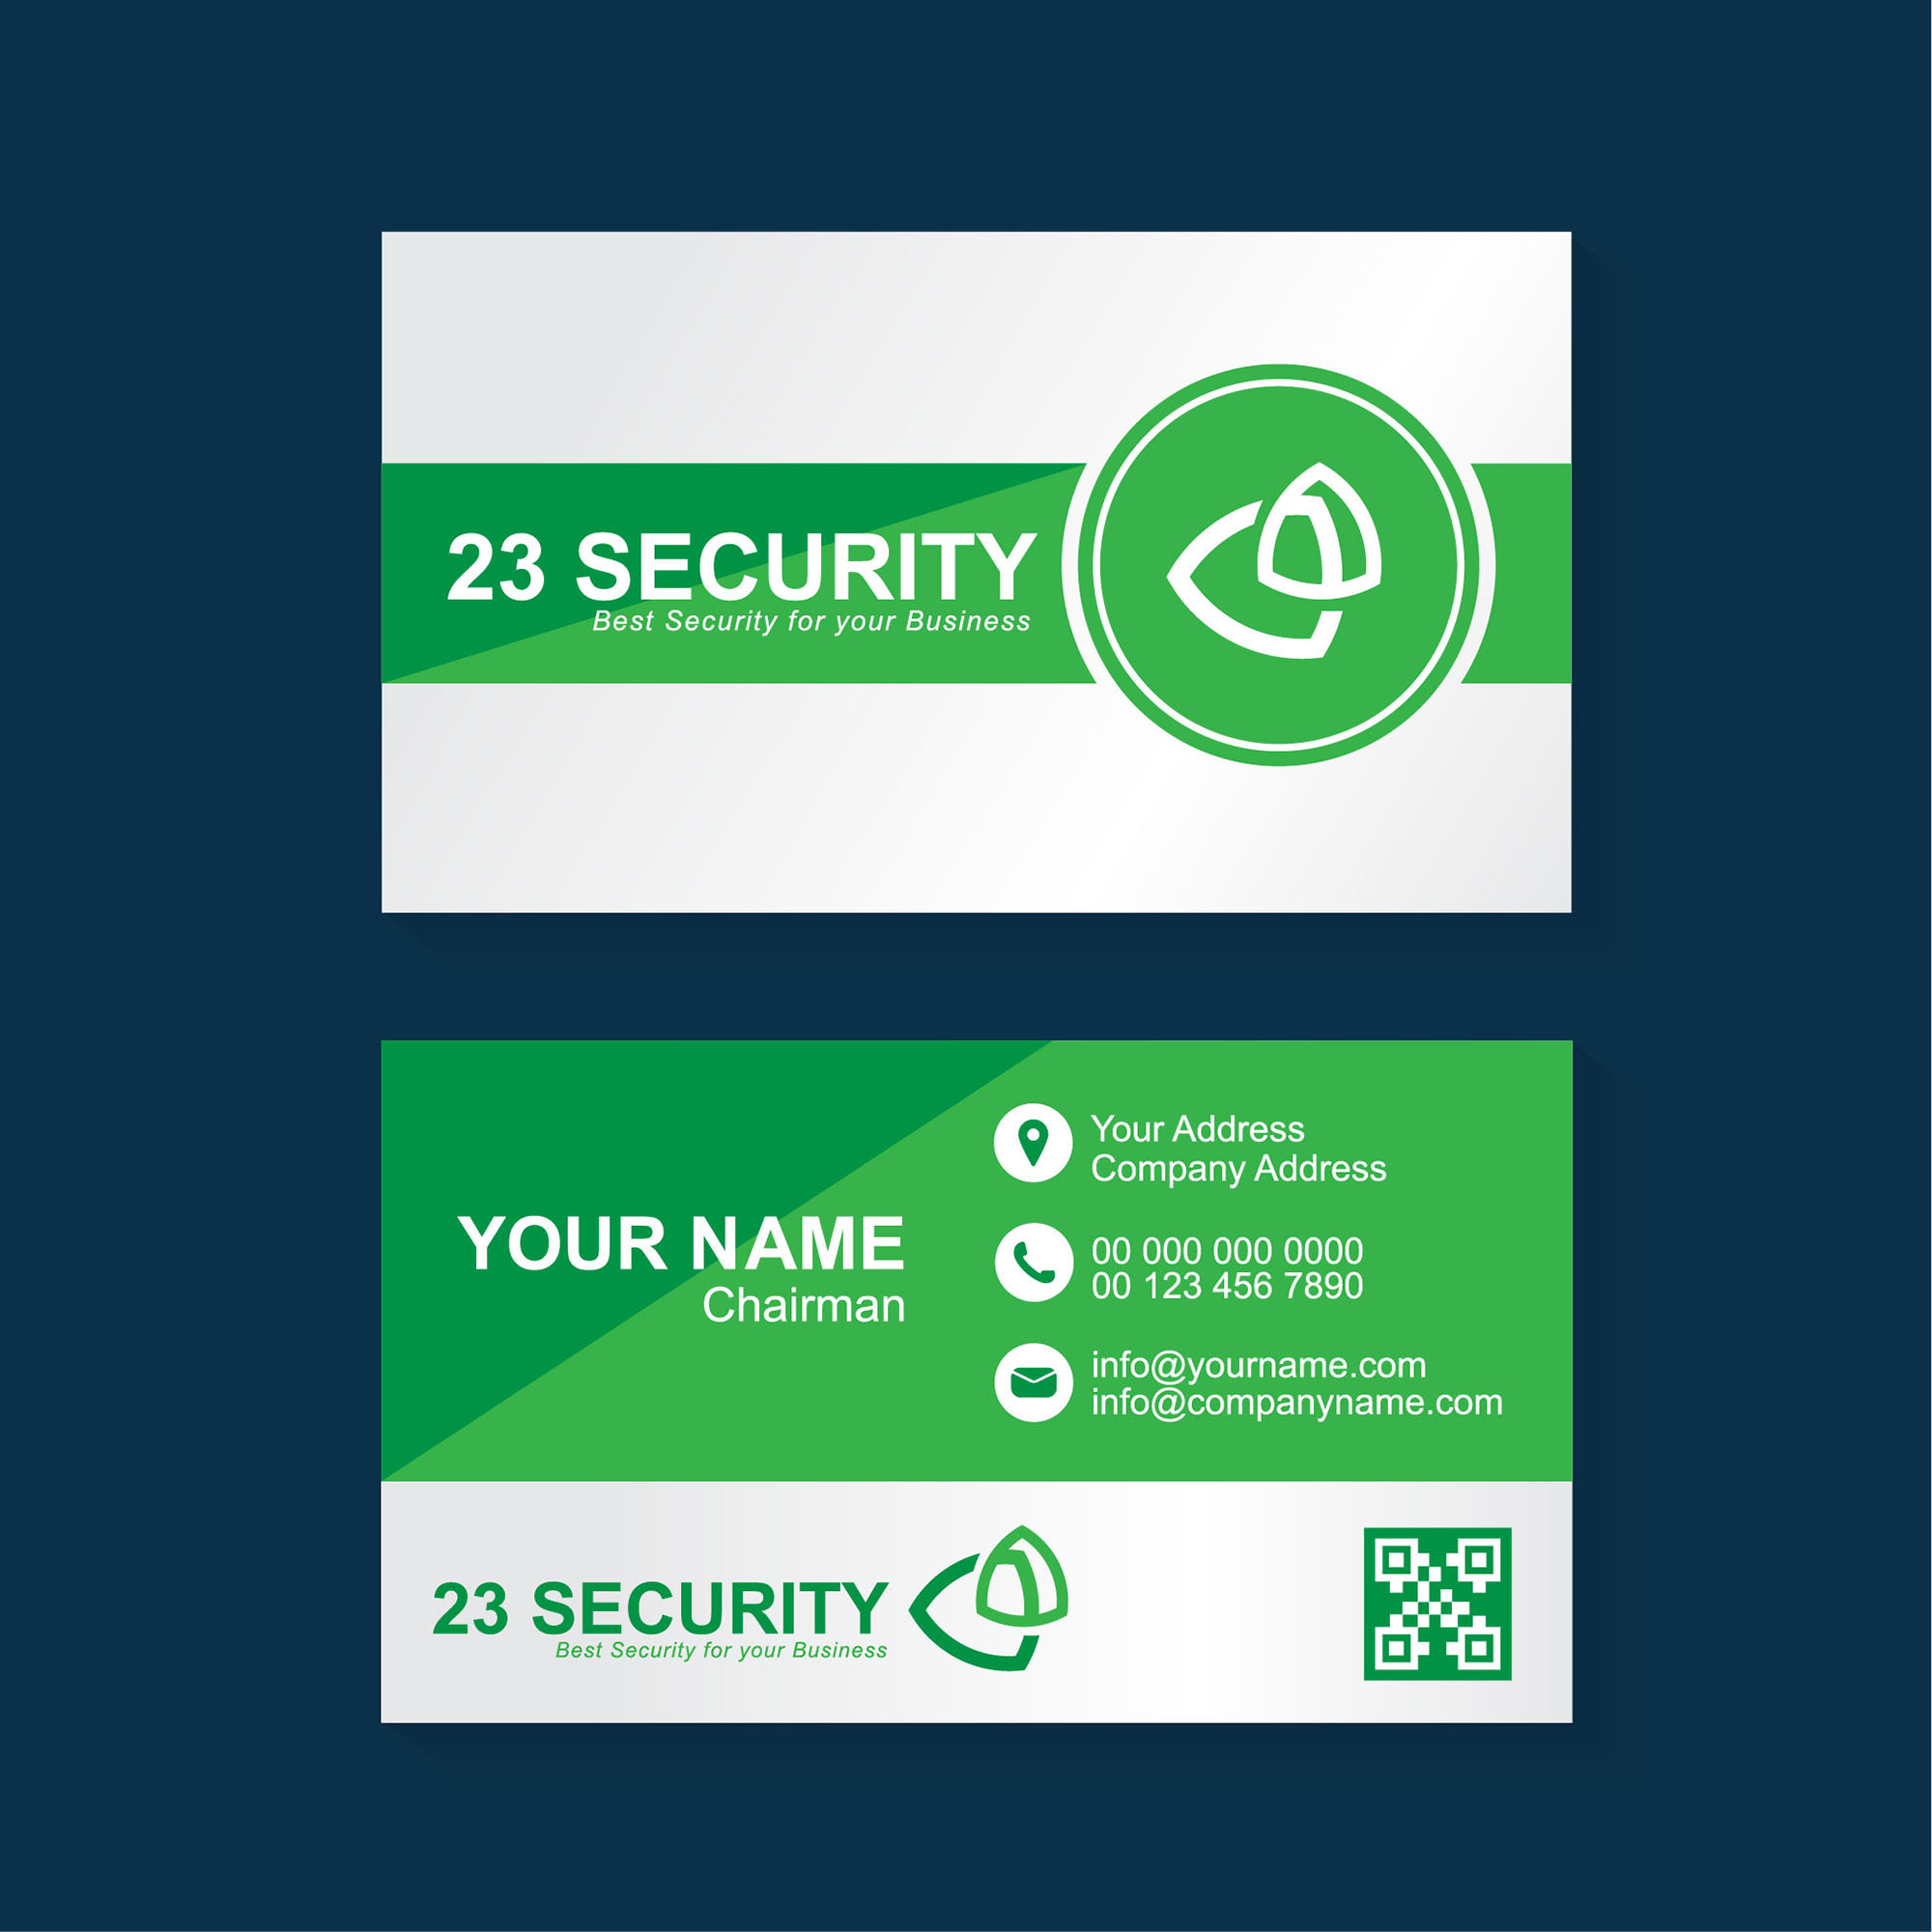 Security business card template free download wisxi business card business cards business card design business card template design templates fbccfo Choice Image